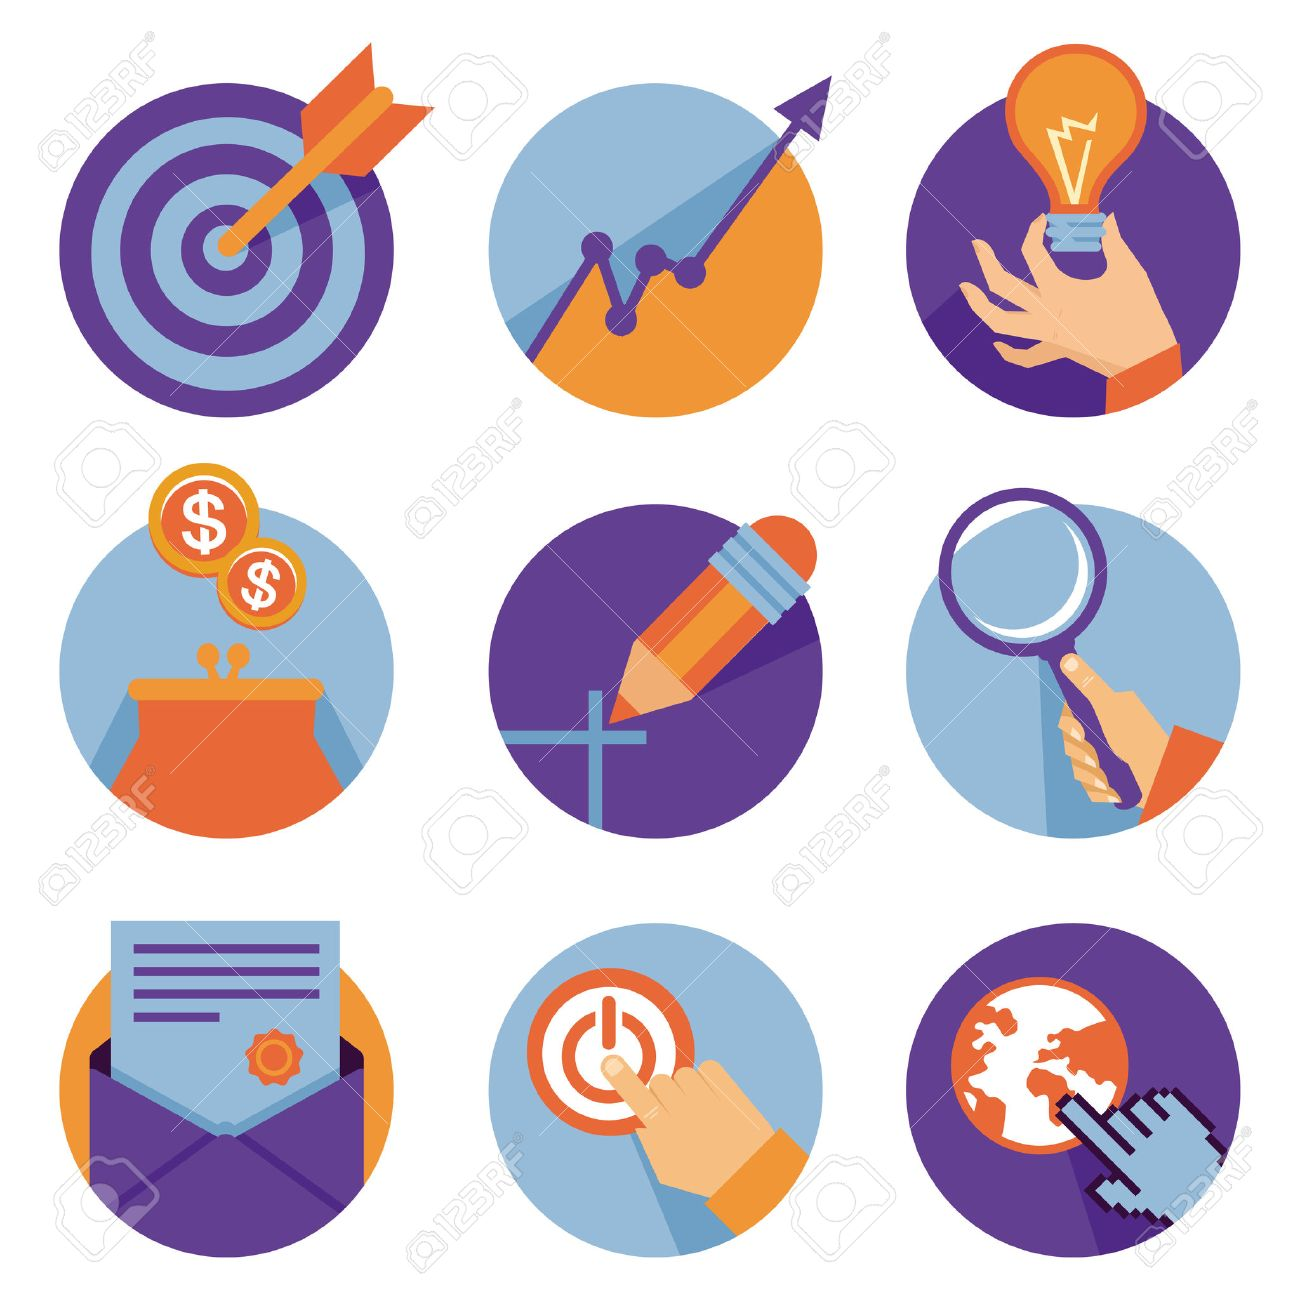 Vector icons in flat retro style - business and development illustrations Stock Vector - 22677502